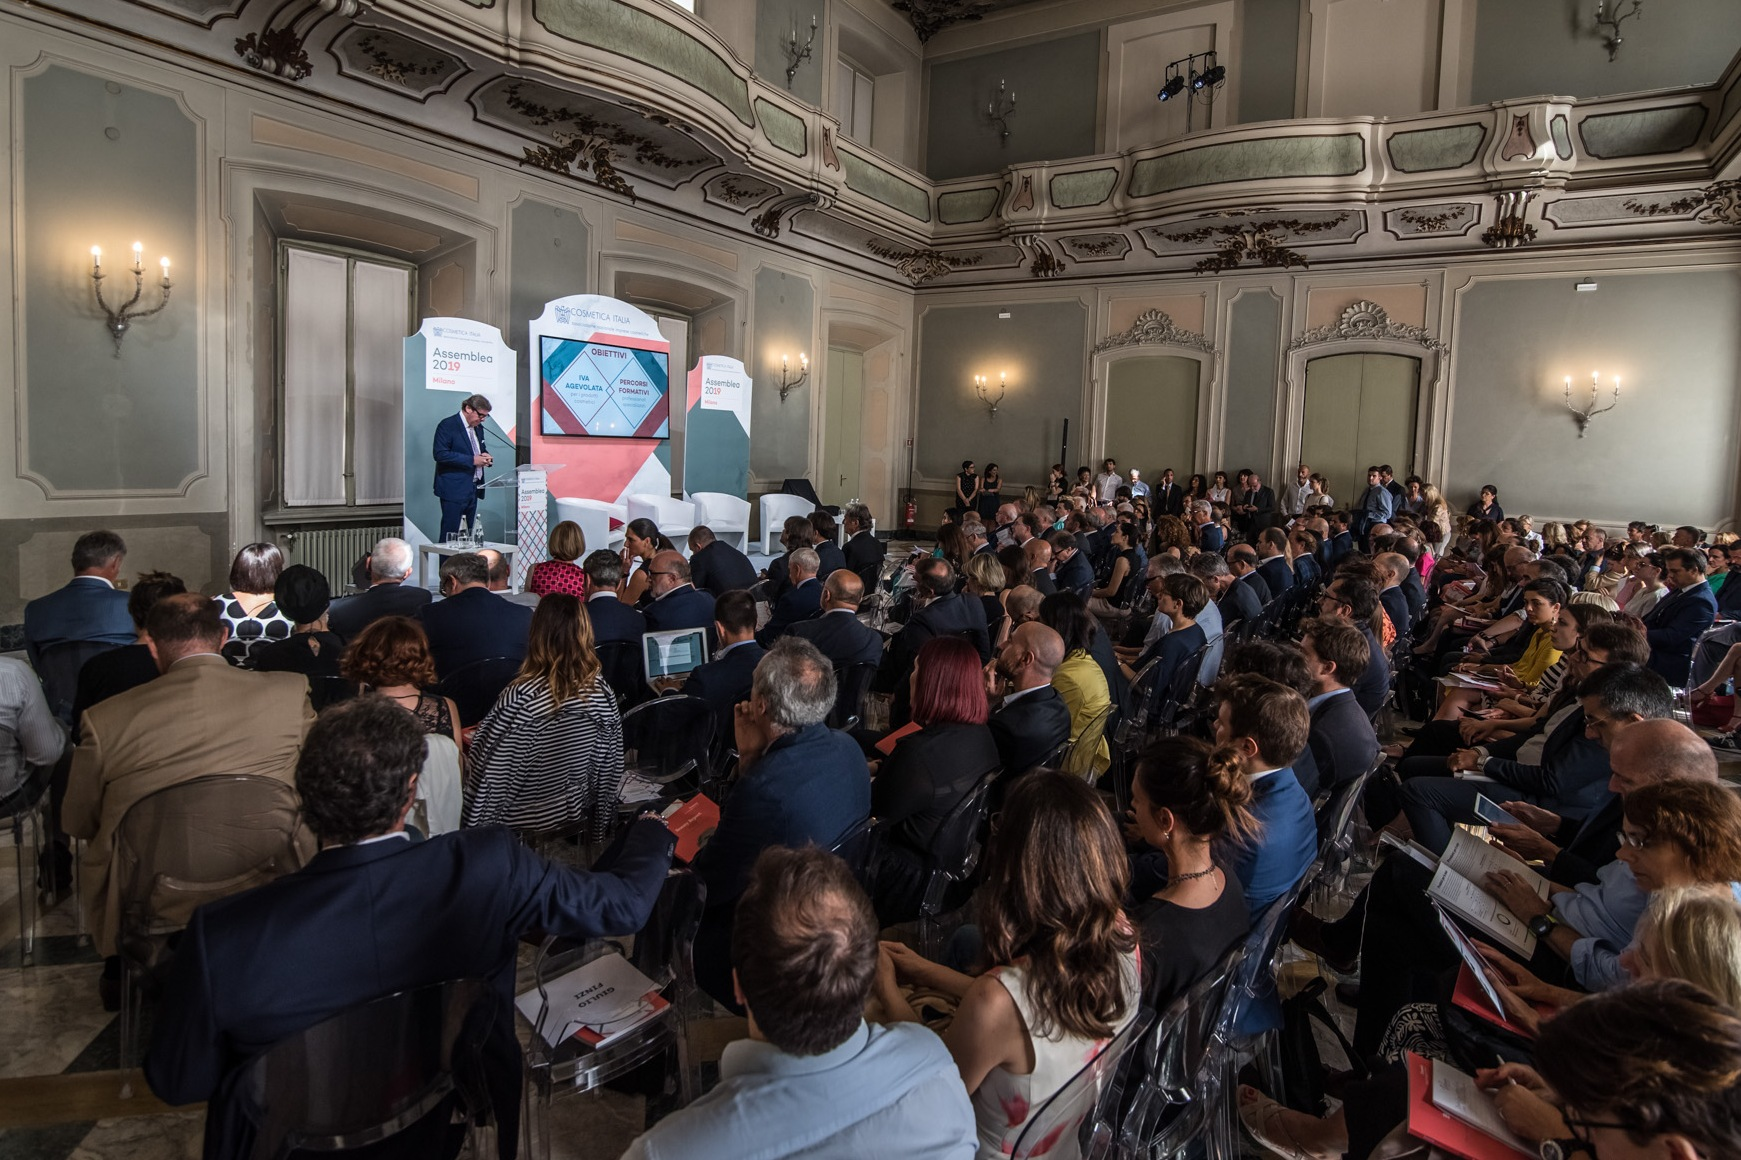 The Cosmetica Italia assembly in Milan.